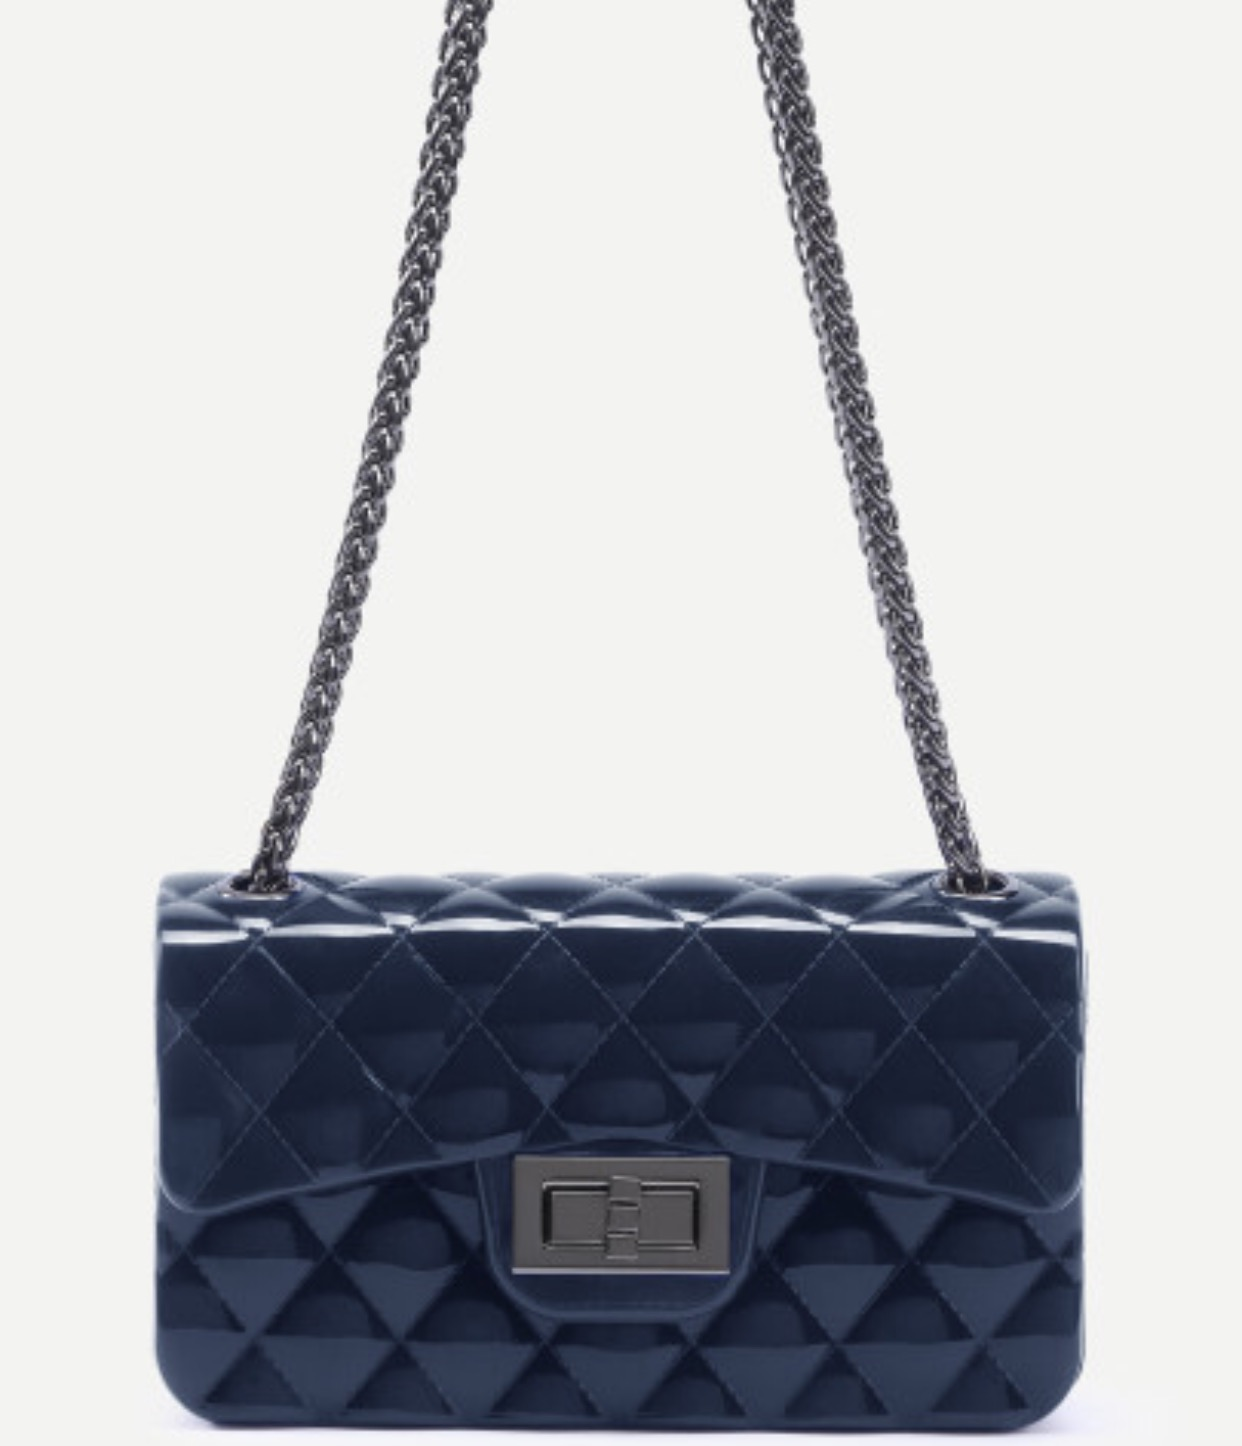 shiny quilted crossbody boy purse w chain blue chain bags purses and handbags bags pinterest